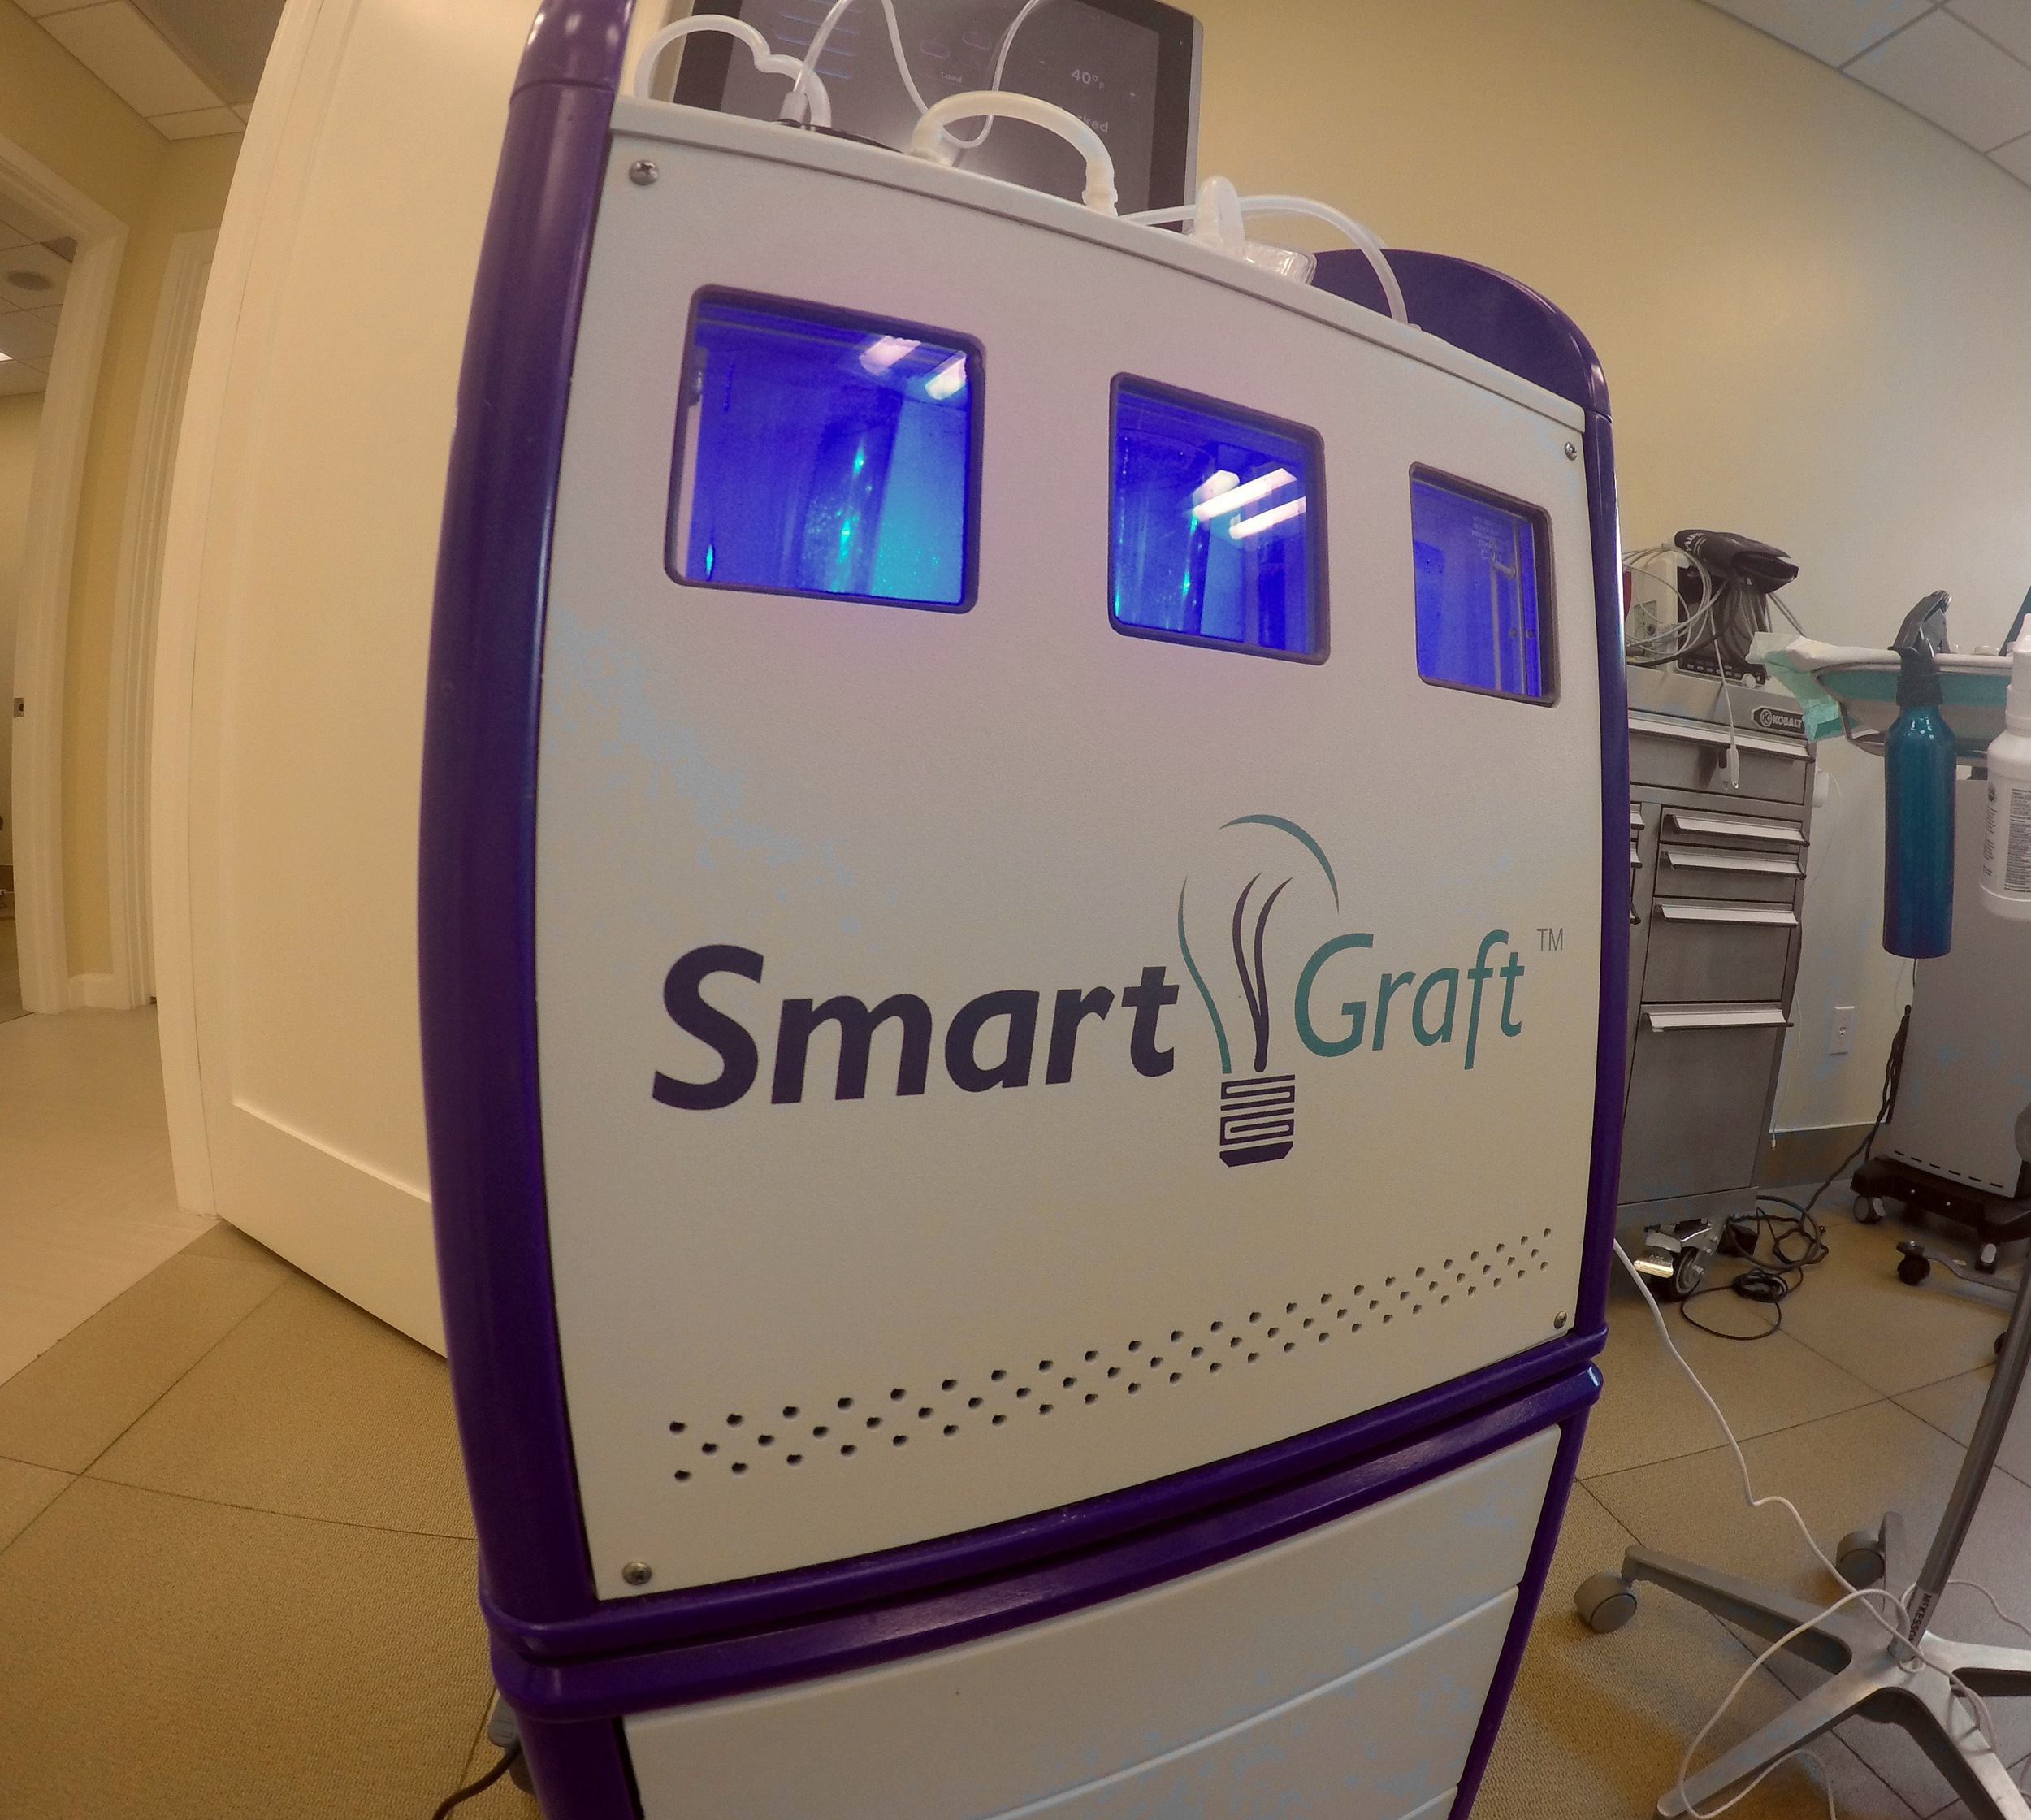 The SmartGraft Machine and it's patented refrigerated cooling chambers